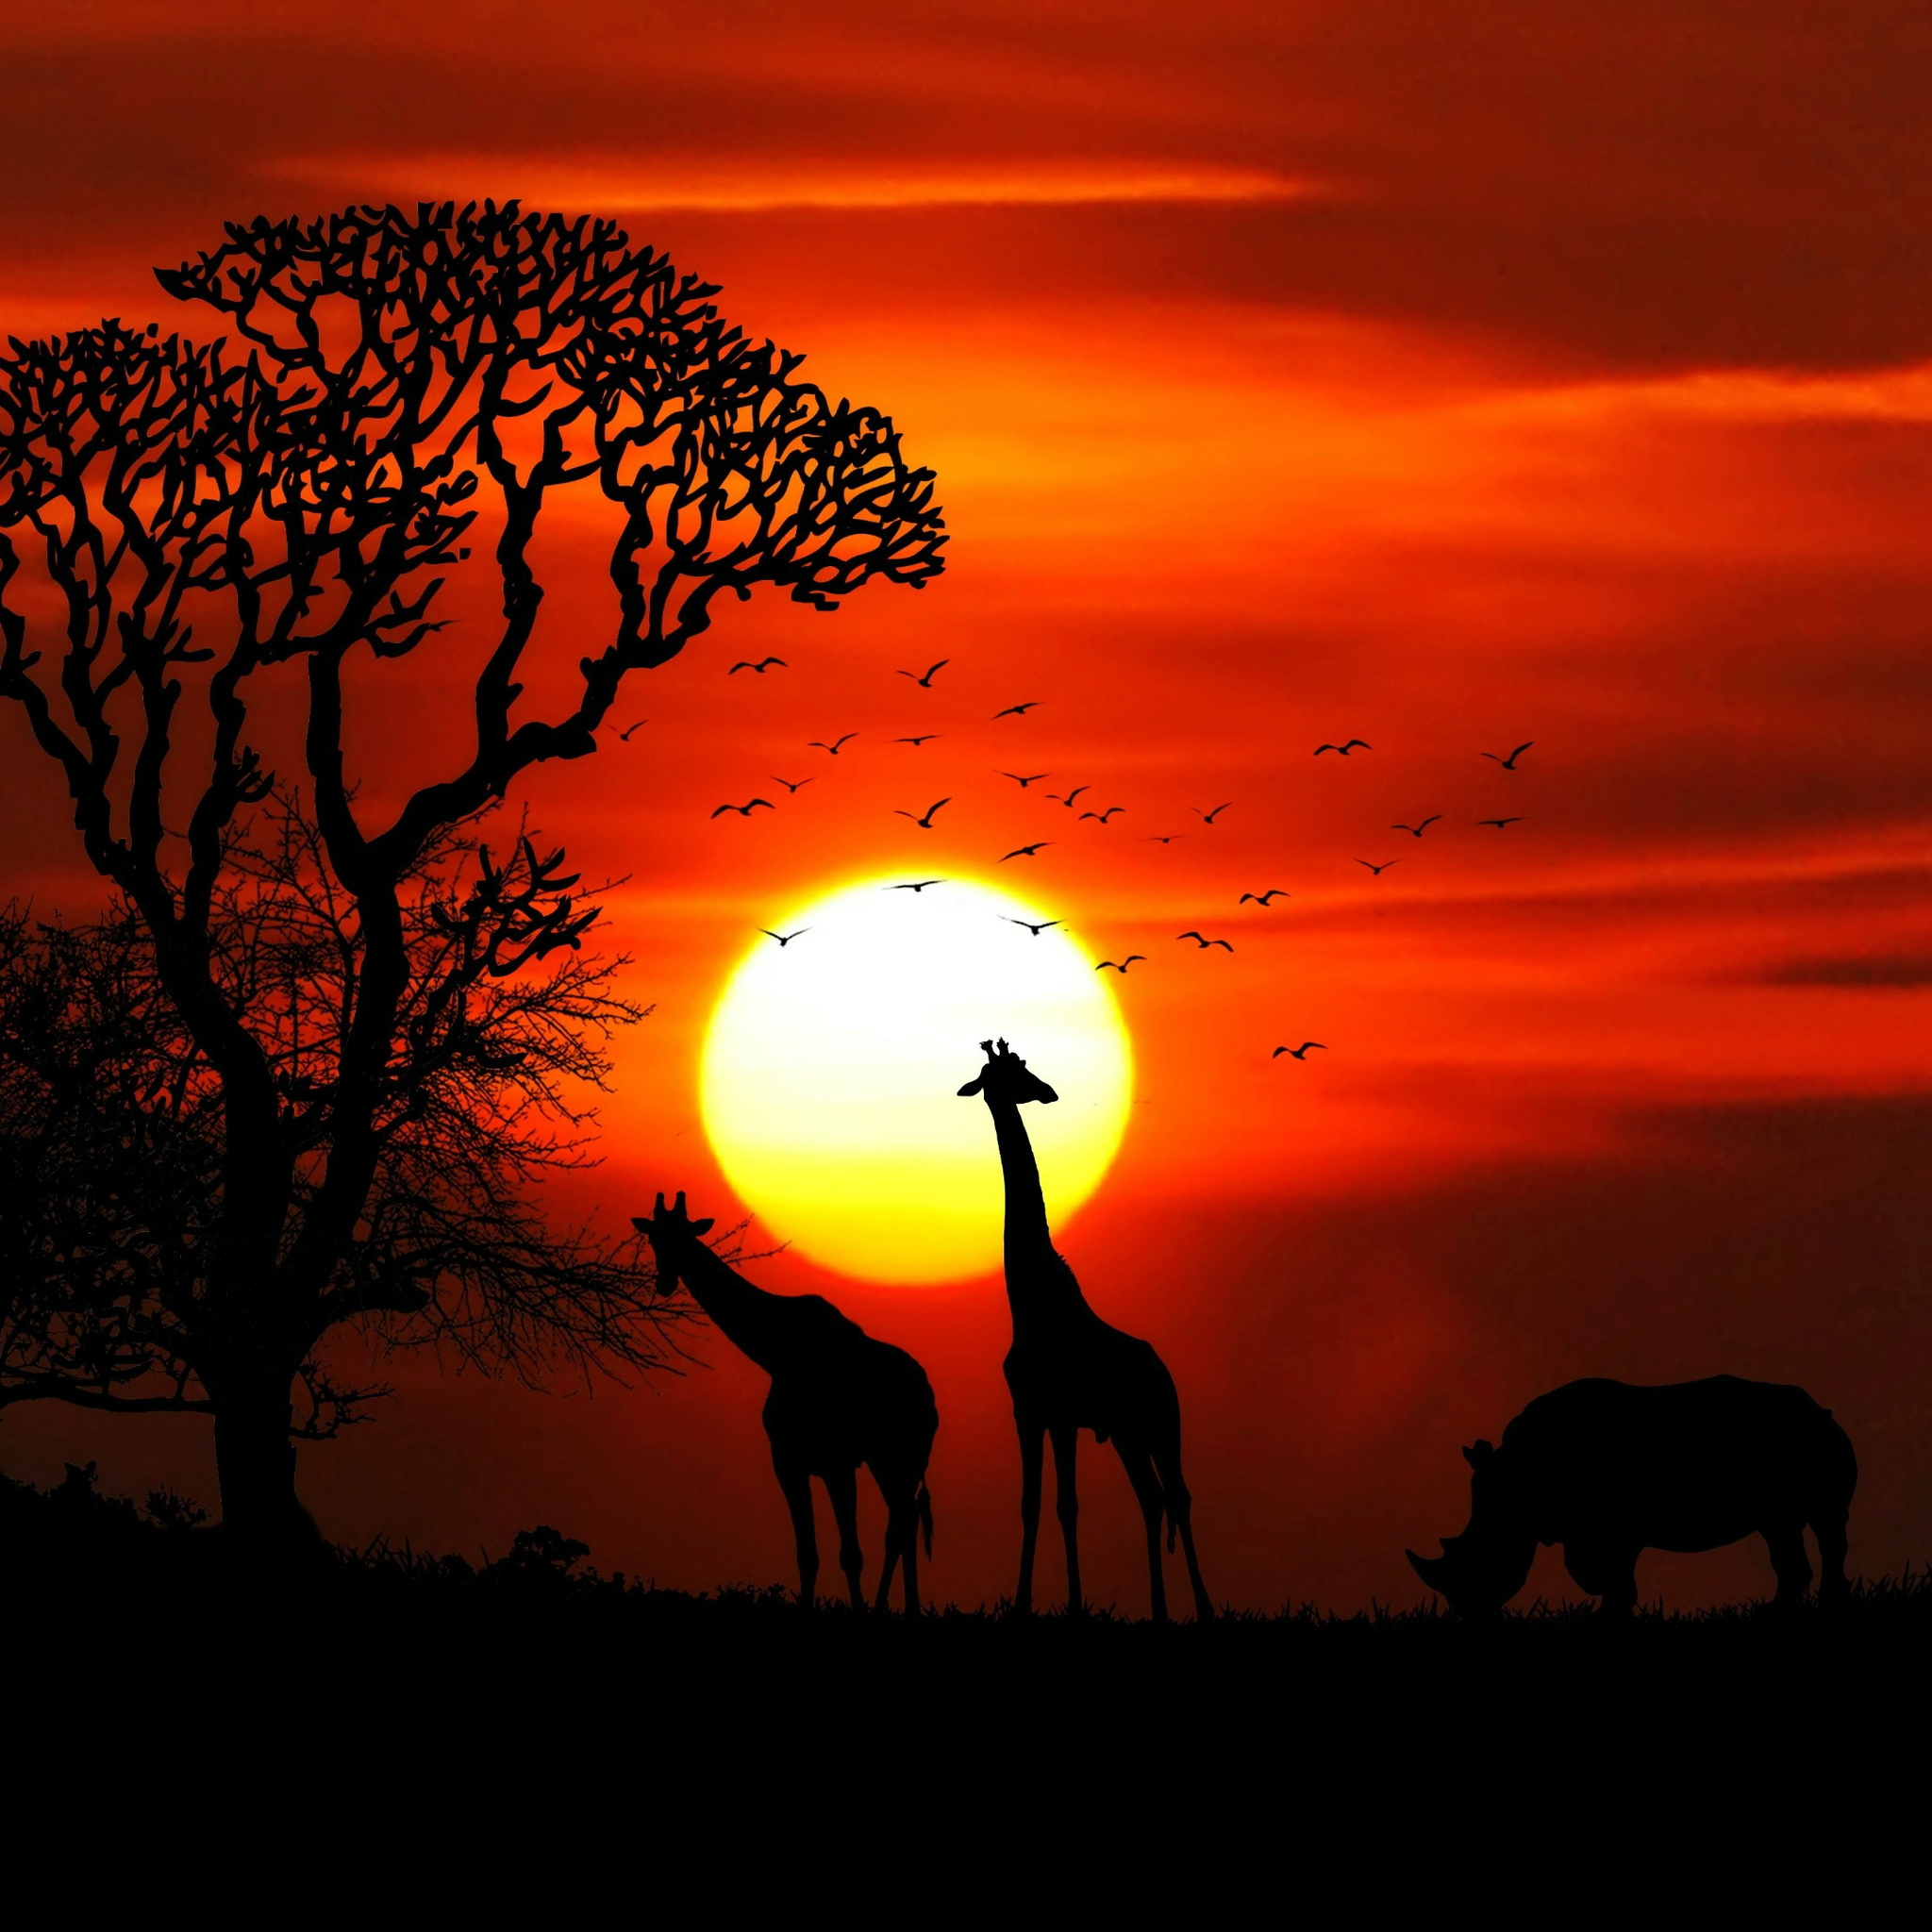 2048x2048 Giraffe Rhino Sunset Red Sky Tree Forest Nature